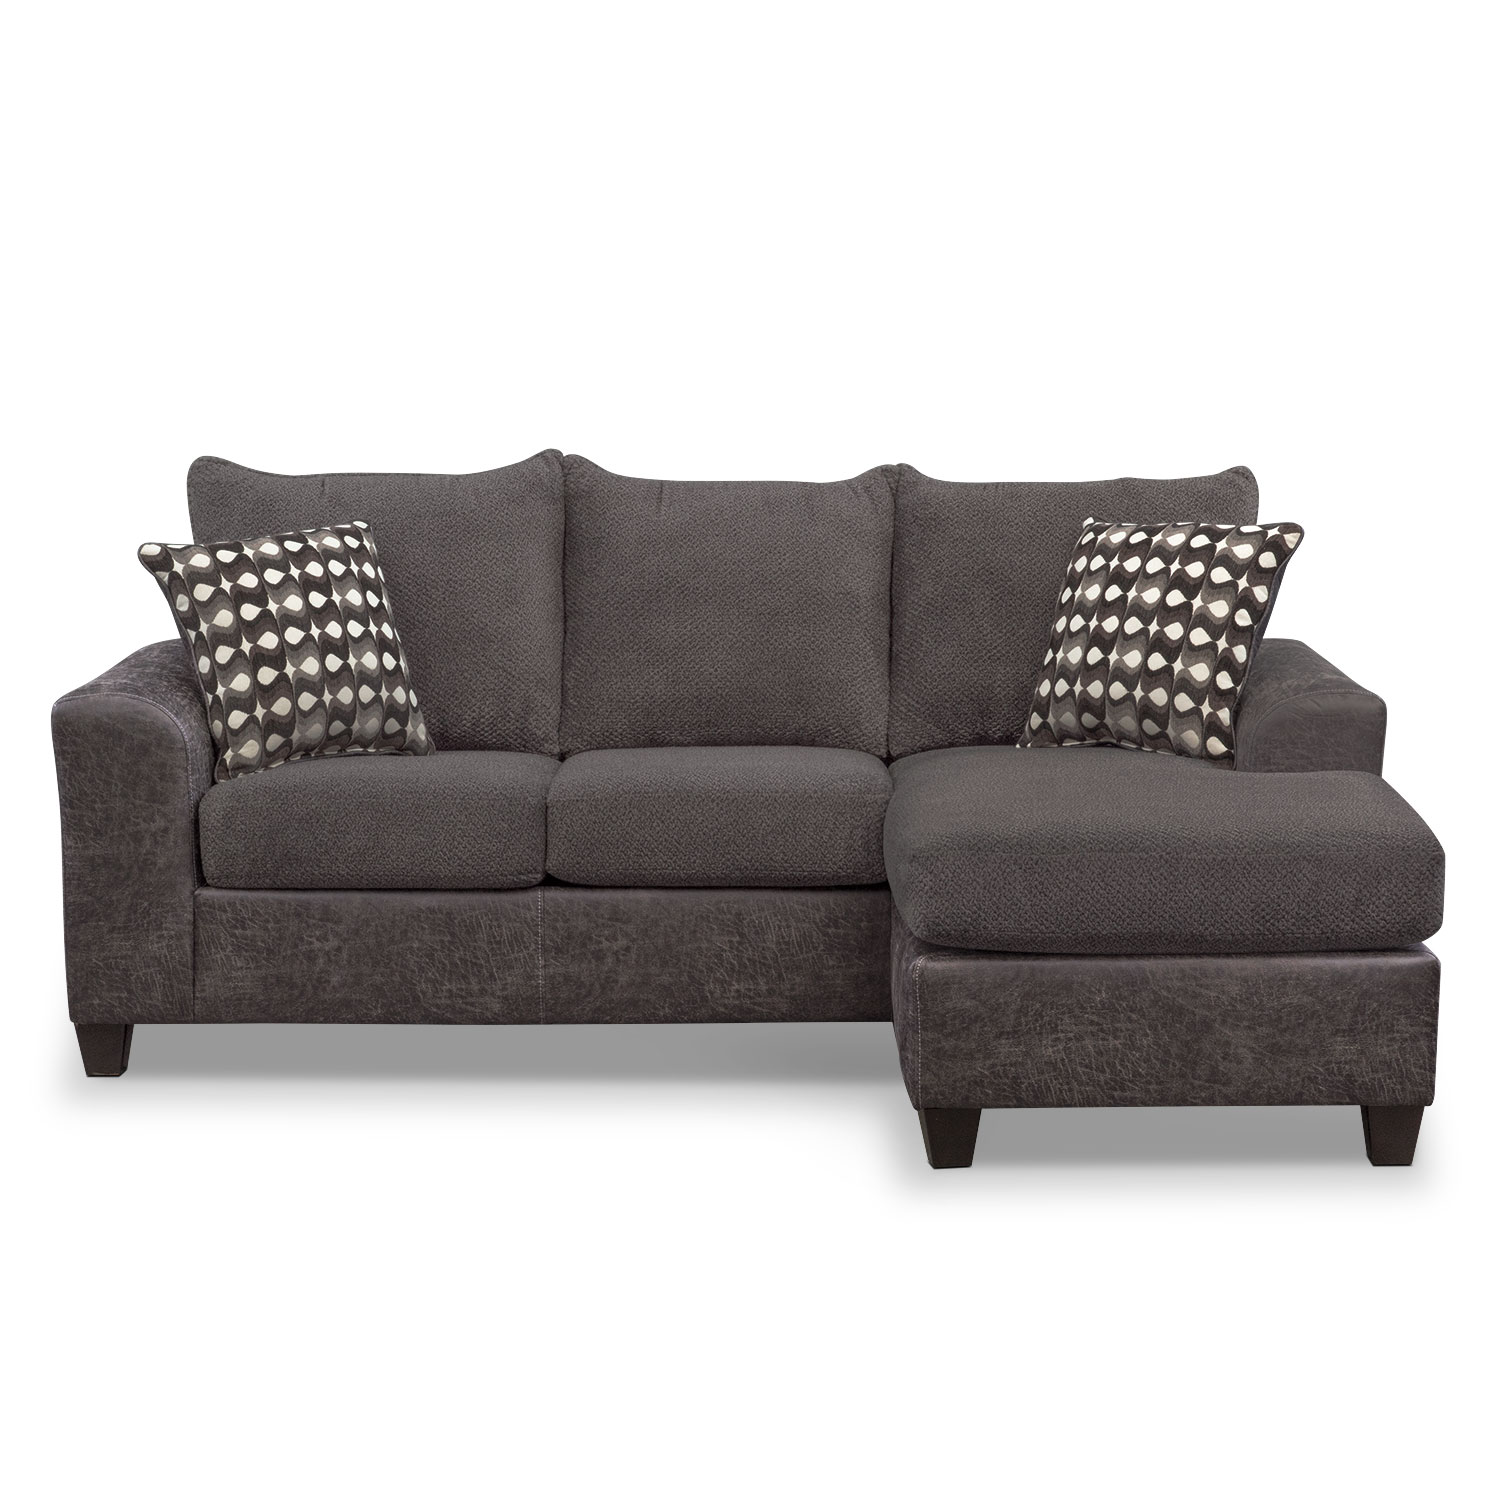 Click to change image. - Brando Sofa With Chaise - Smoke Value City Furniture